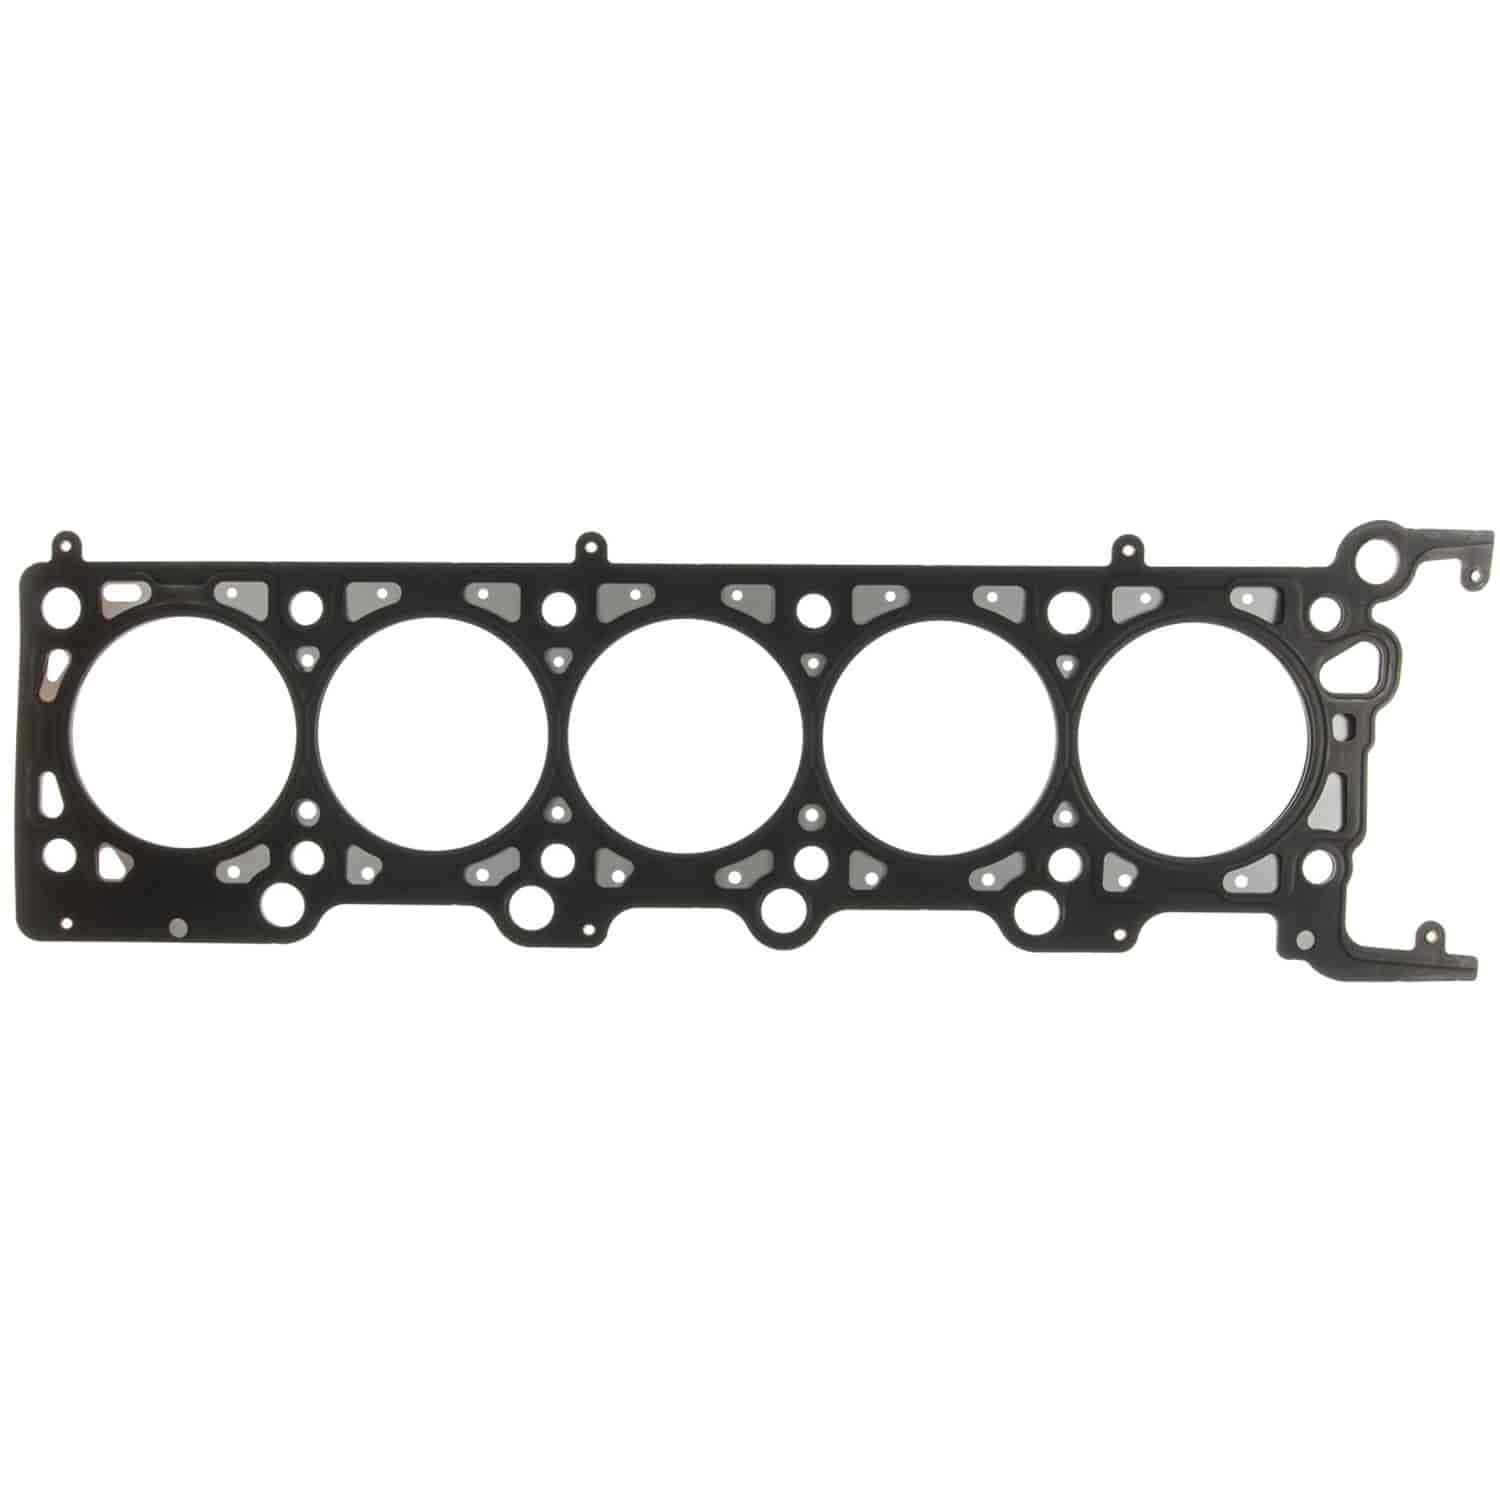 clevite mahle 54243 cylinder head gasket left ford truck. Black Bedroom Furniture Sets. Home Design Ideas